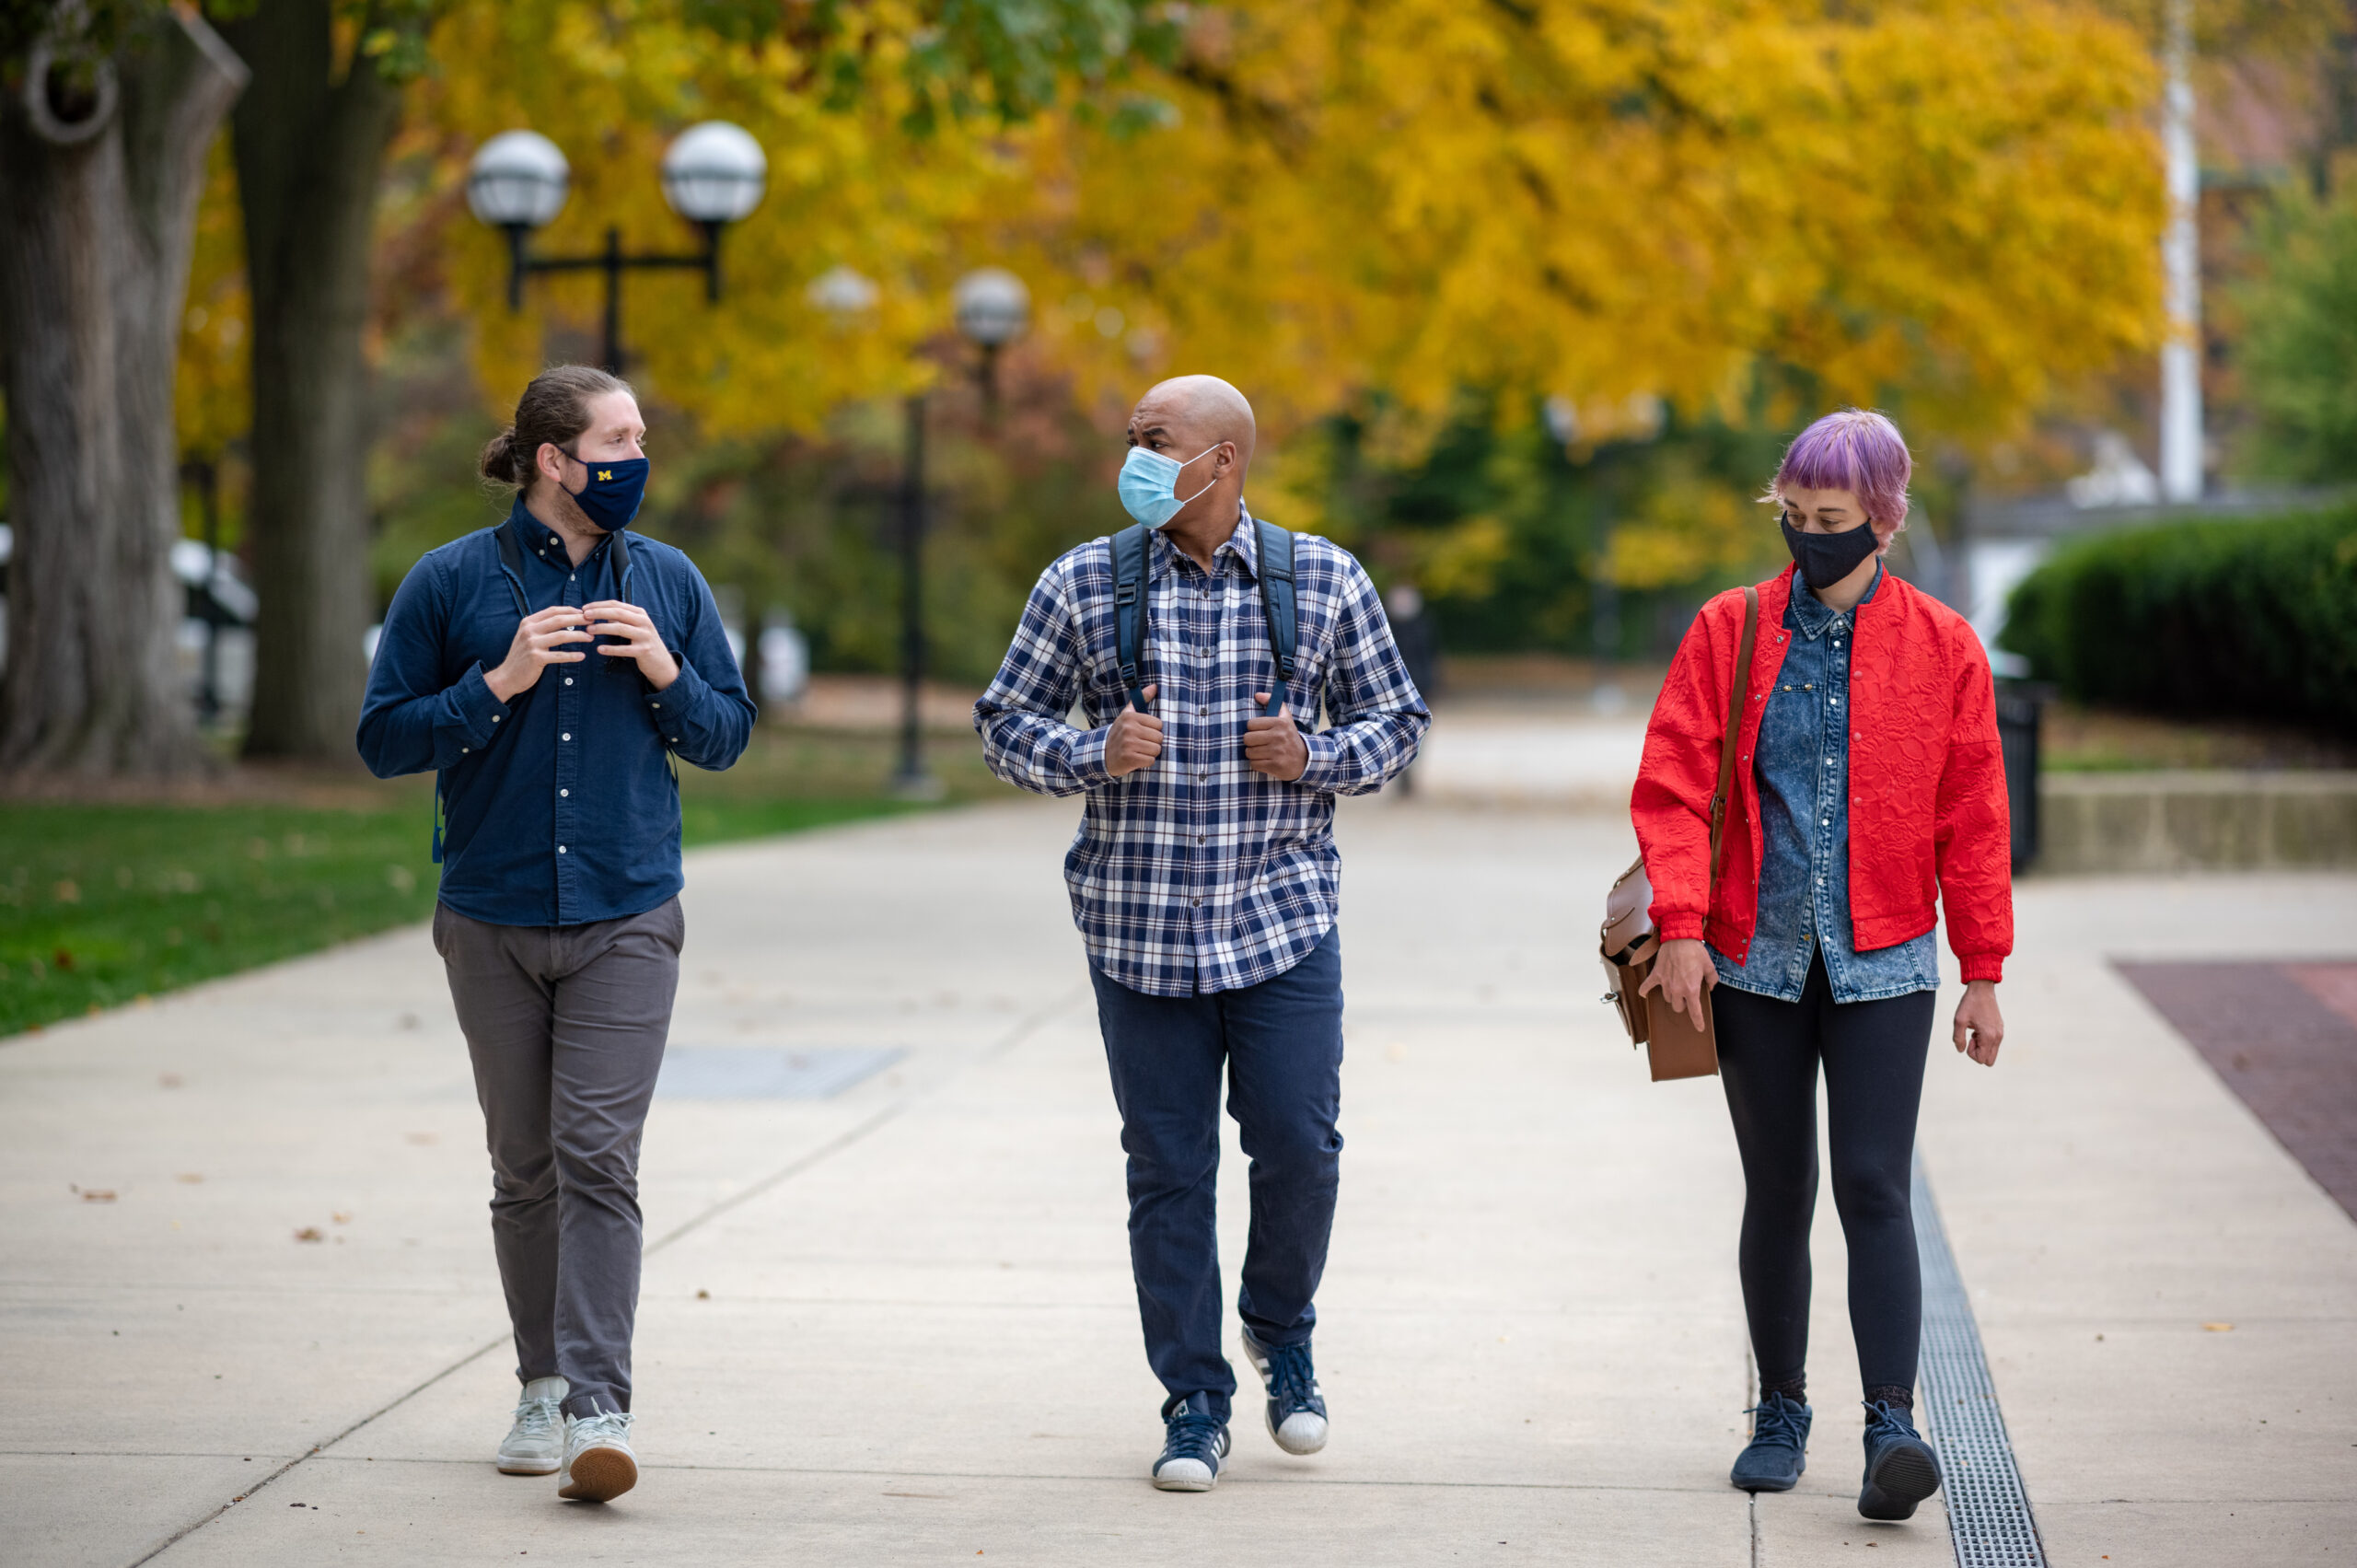 University of Michigan School of Information graduate students Joshua Tooker, Michael Payne and Lauren Trimble, (left to right) walk on campus. Image credit: Eric Bronson, Michigan Photography